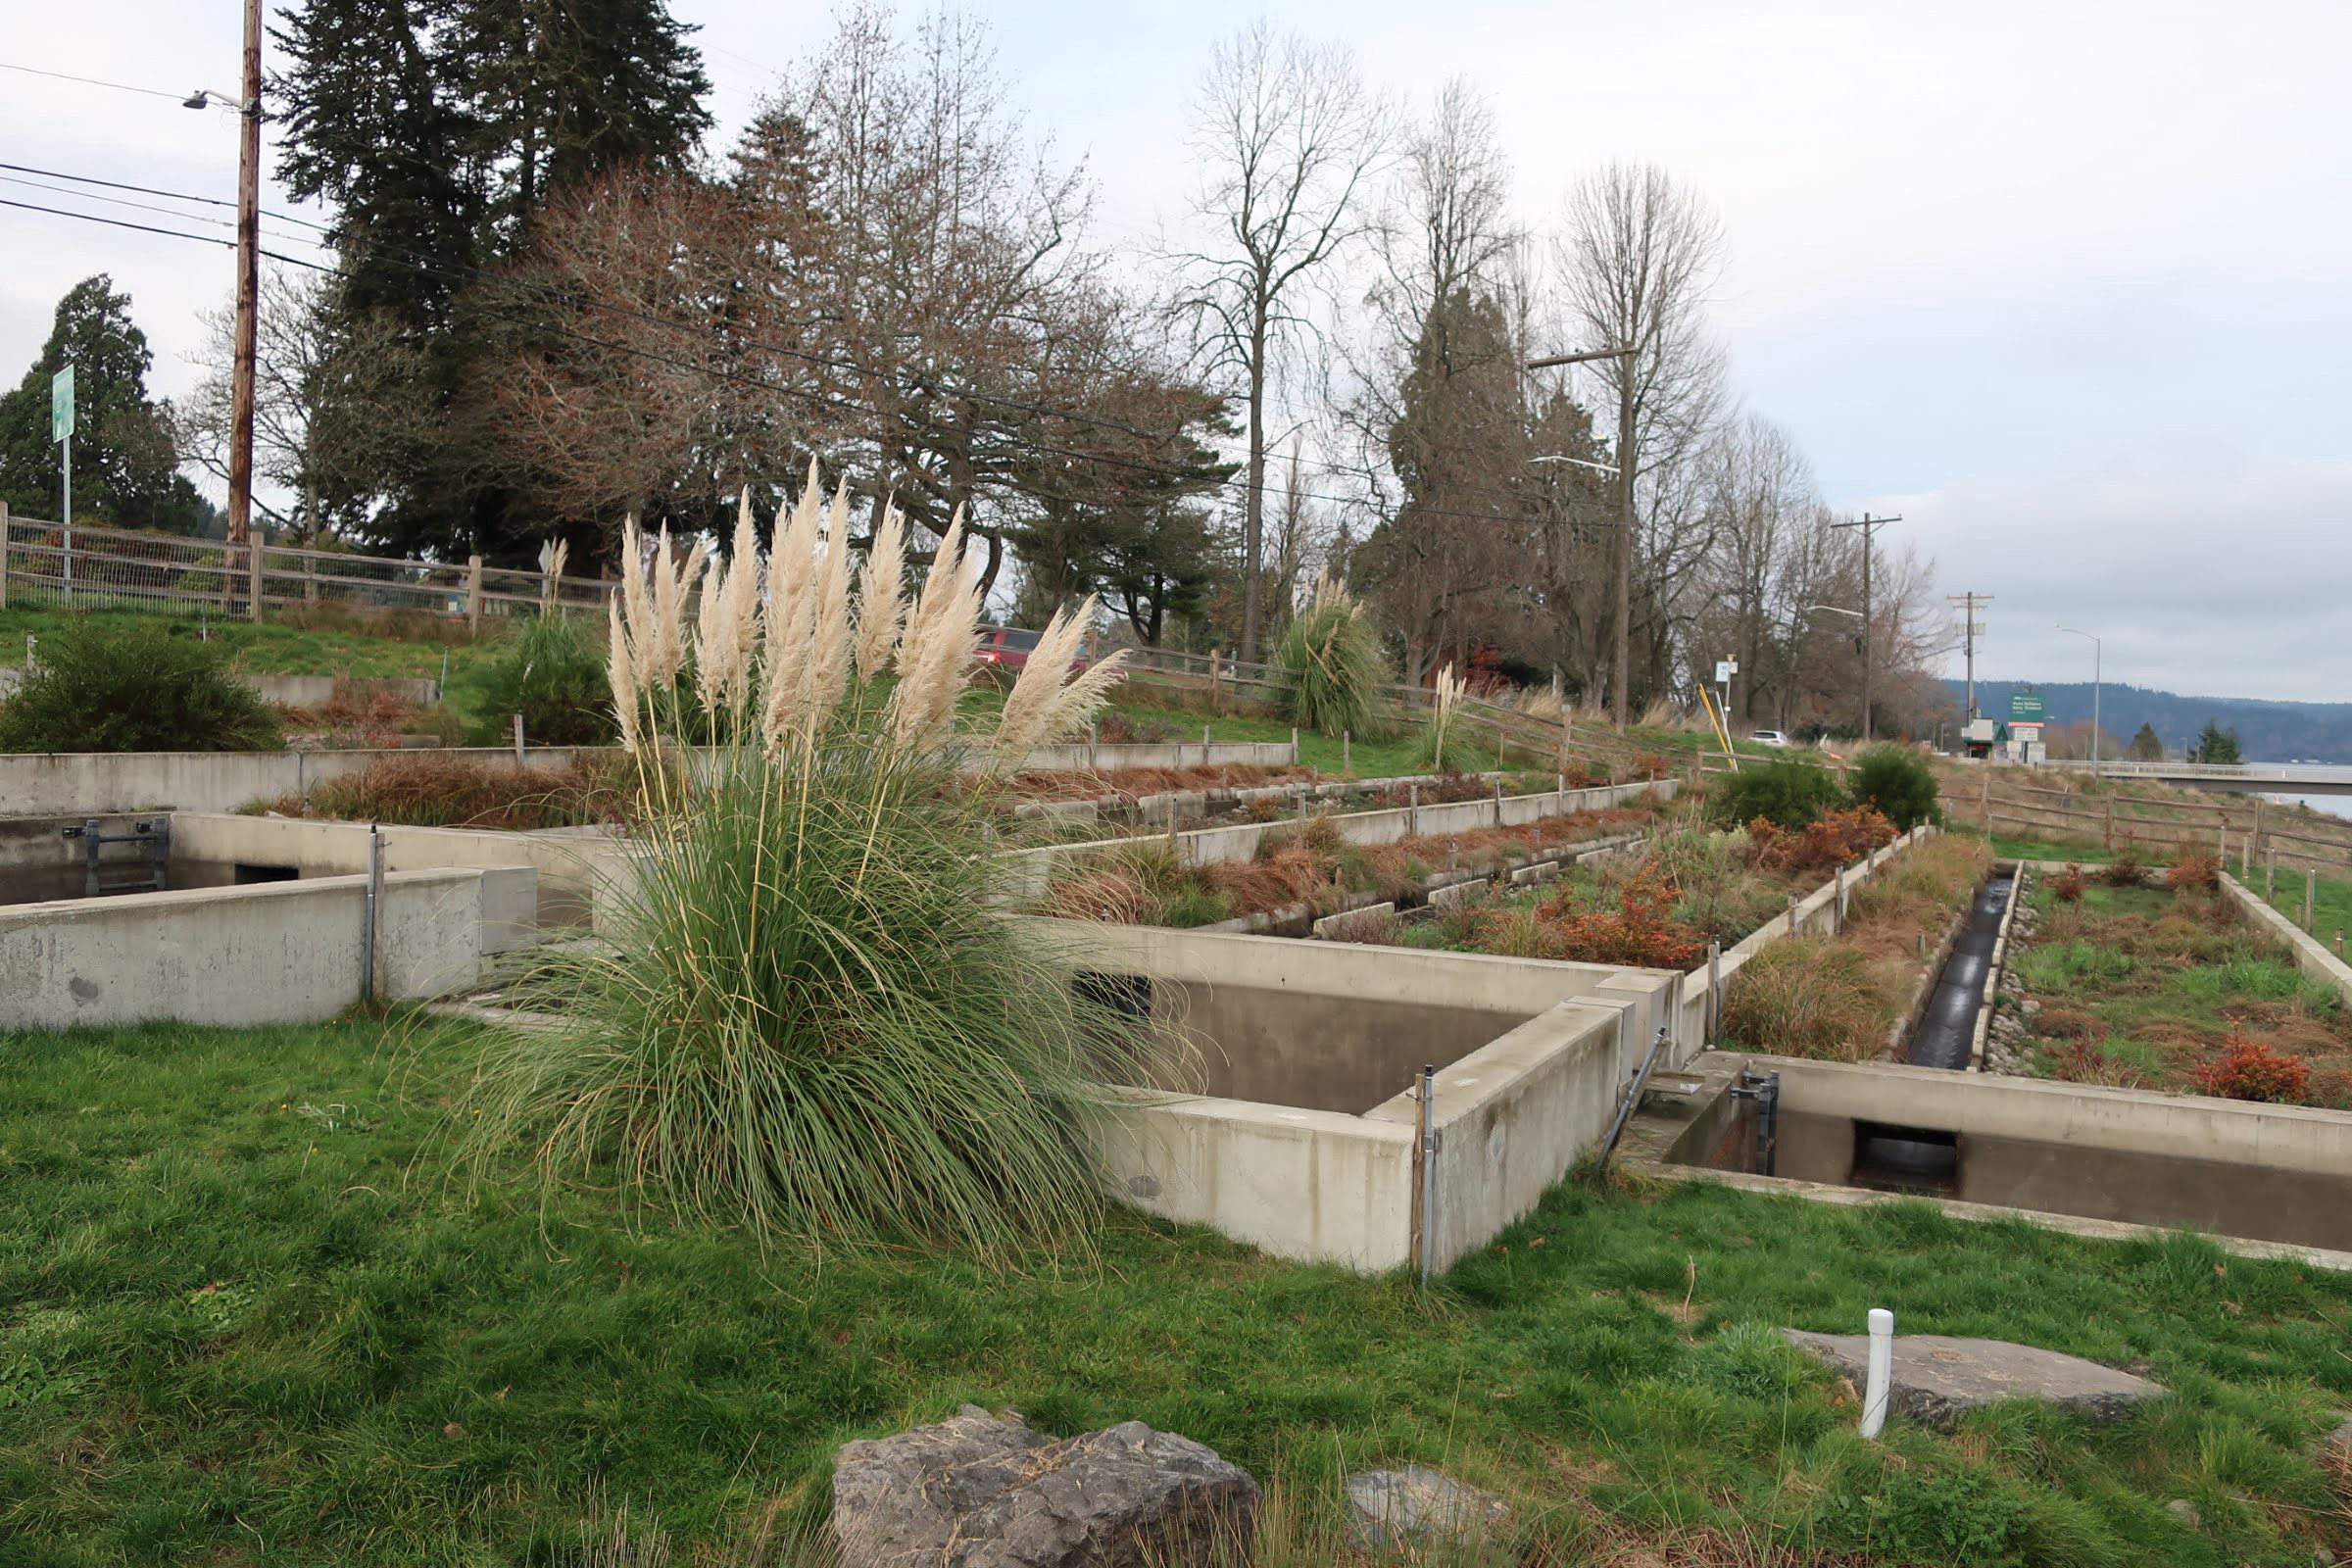 Photo of Tacoma's Point Defiance Regional Stormwater Treatment Facility, which has native plants and concrete holding areas